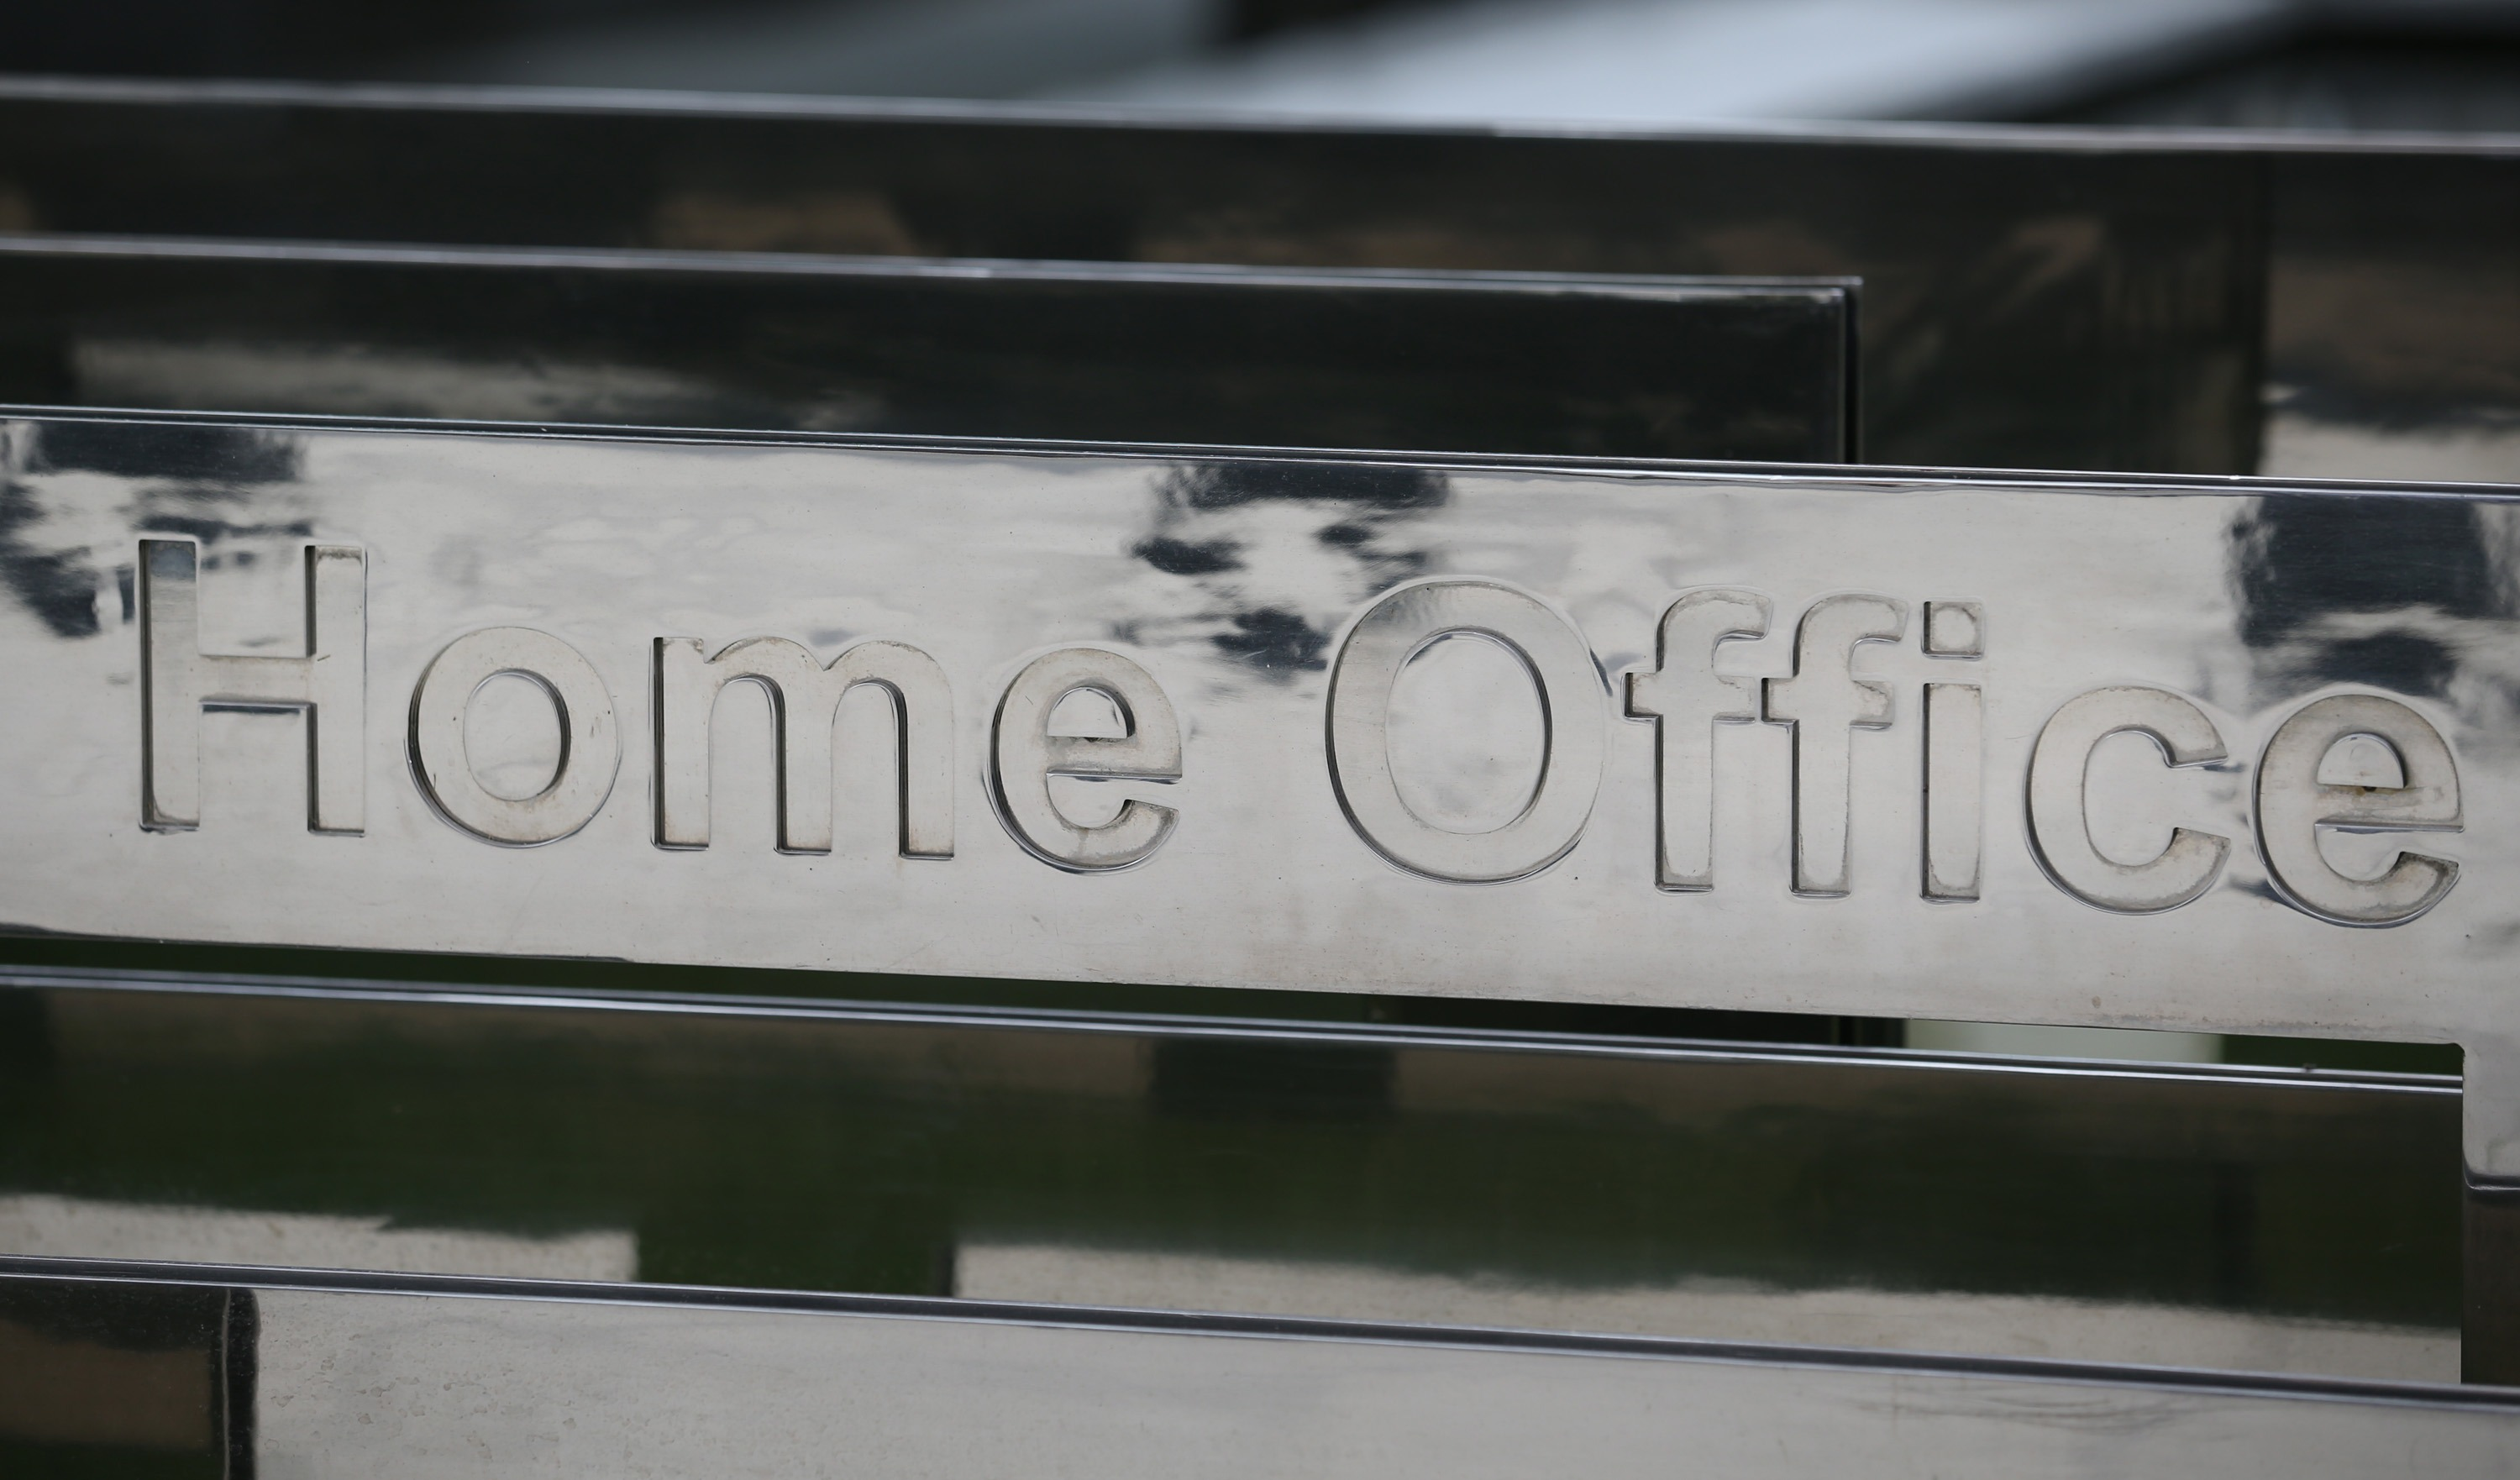 Home Office using religion against LGBT asylum seekers, says report